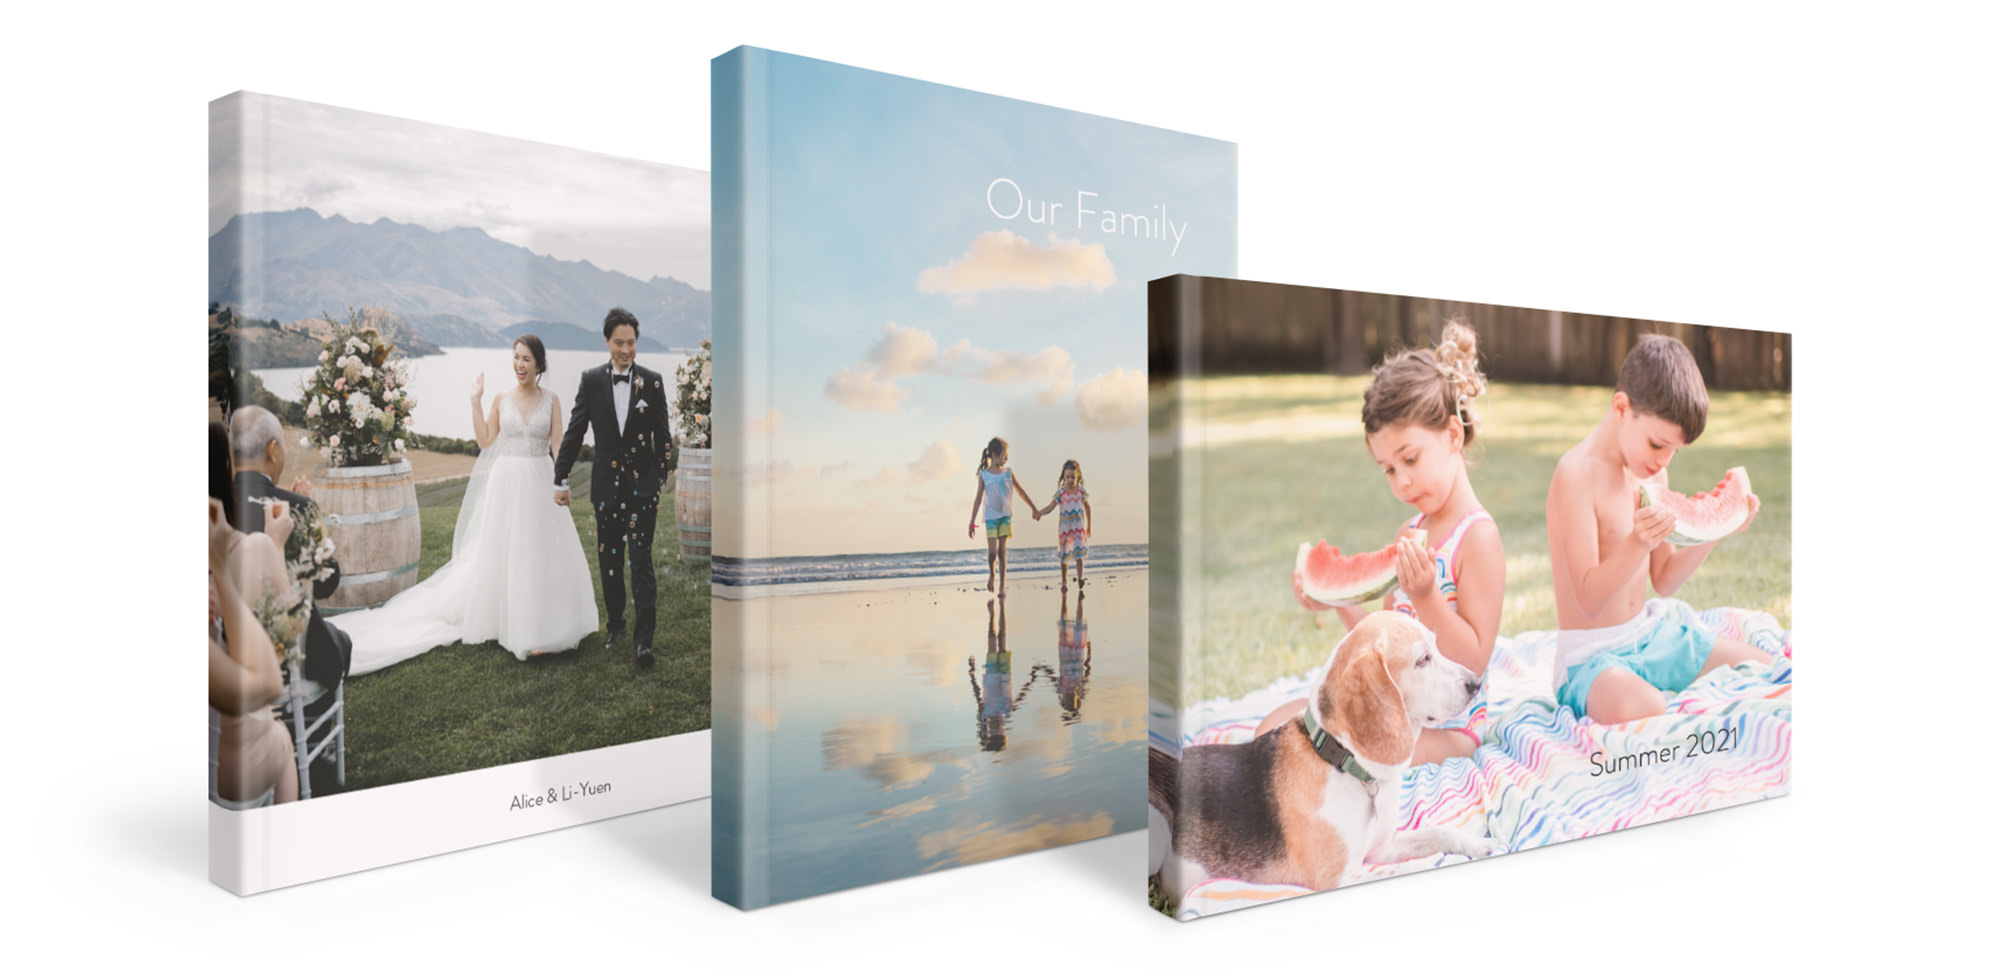 Three Luxe Softcover Photo Books standing side by side